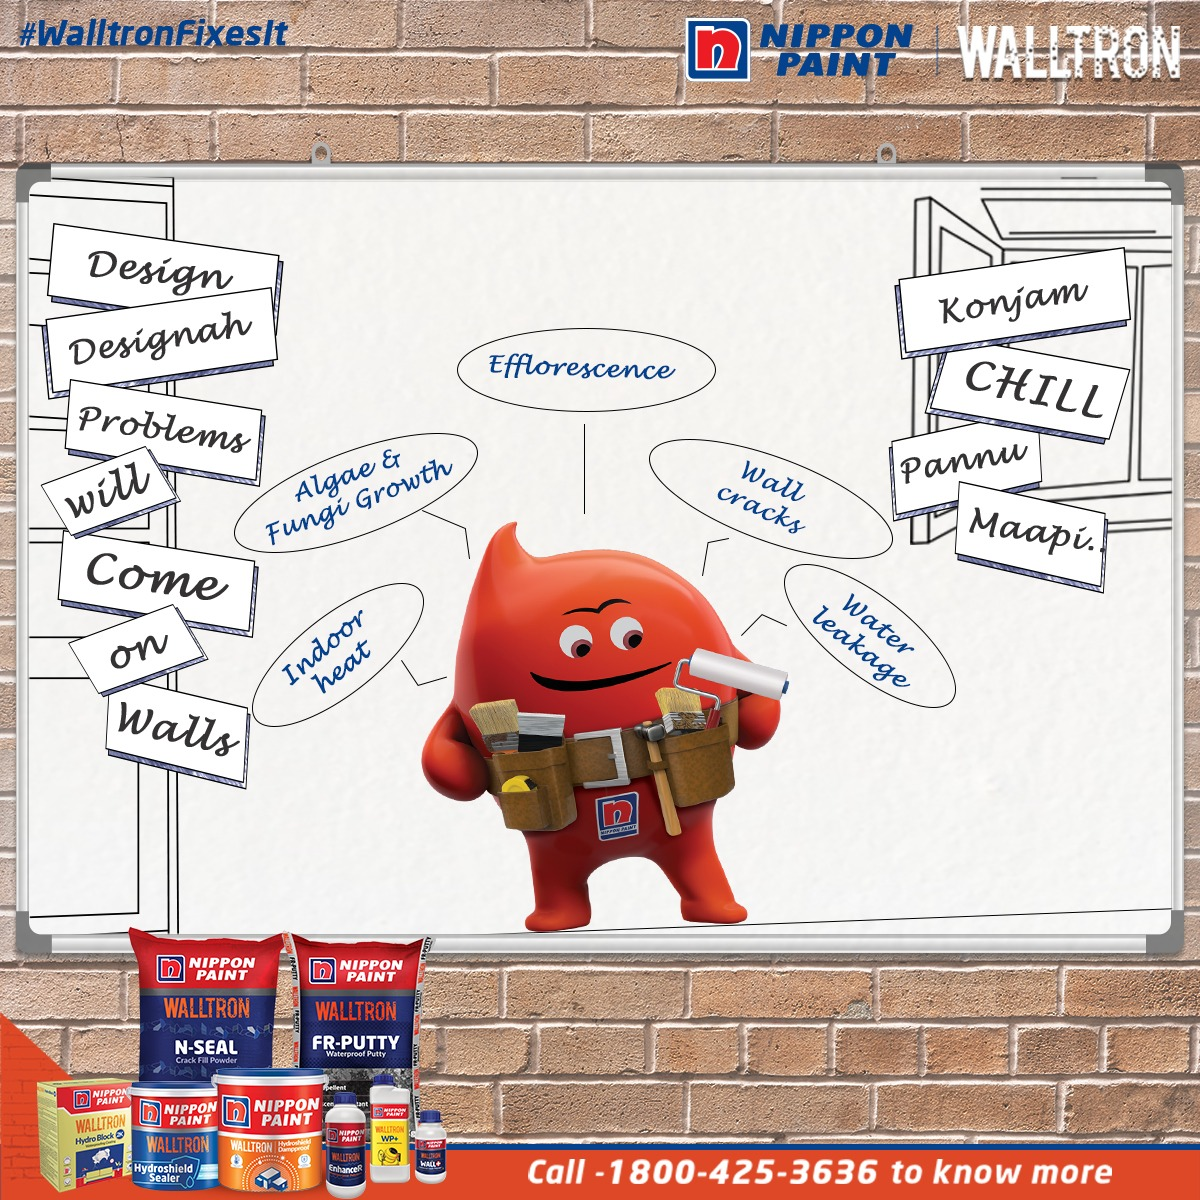 Konjam chill pannu maapi, Nippon Paint Walltron is here. For all your wall related problems call the pro and chill!  To know more visit:  or call 1800-425-3636.  #NipponPaint #WalltronFixesIt #OneSolutionForProblems #Kuttistory #Topical